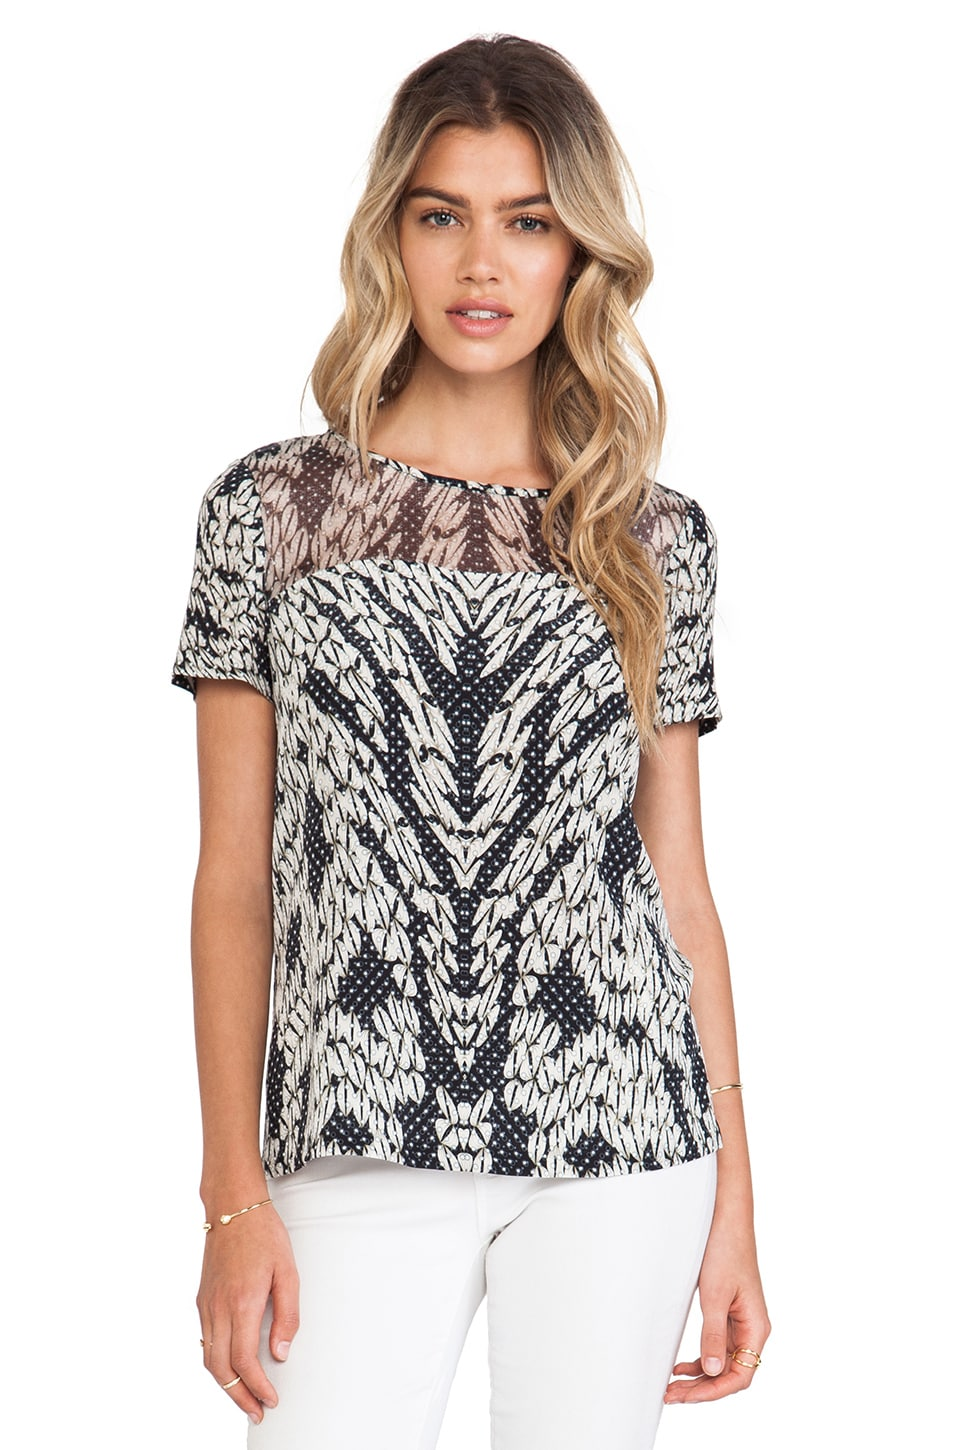 Diane von Furstenberg Angela Tee in Panther Lace Black